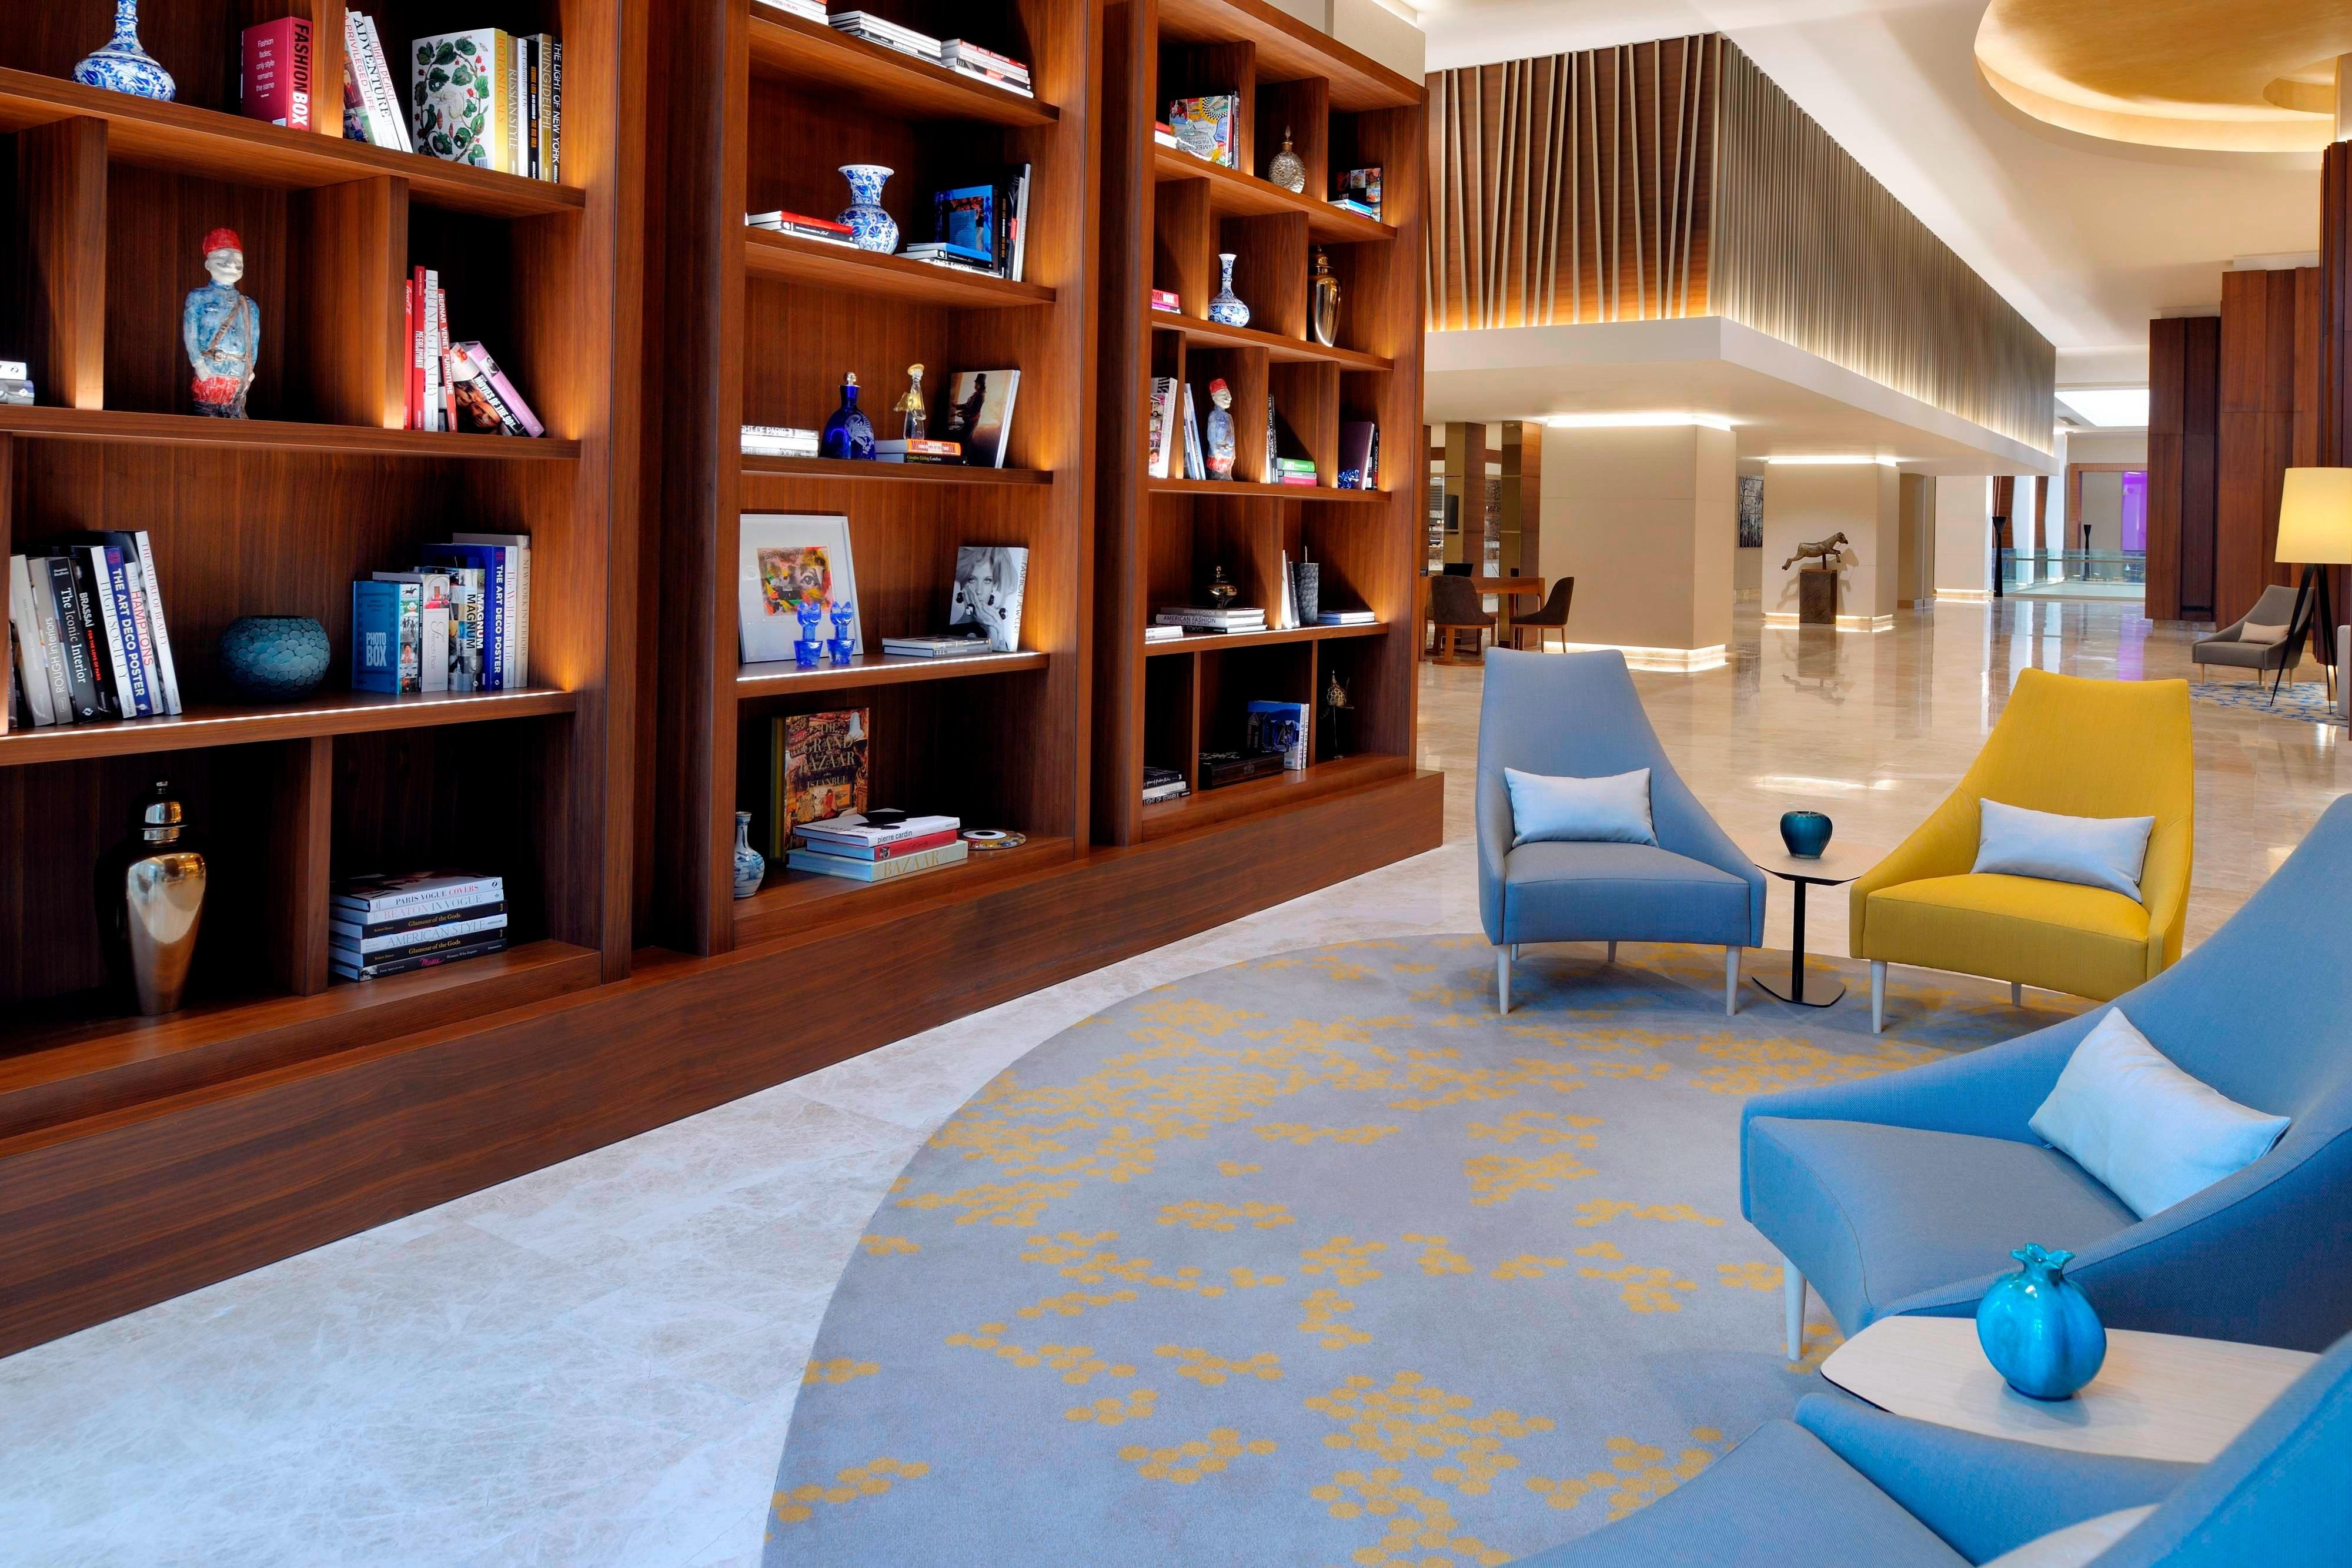 Istanbul hotel lobby library